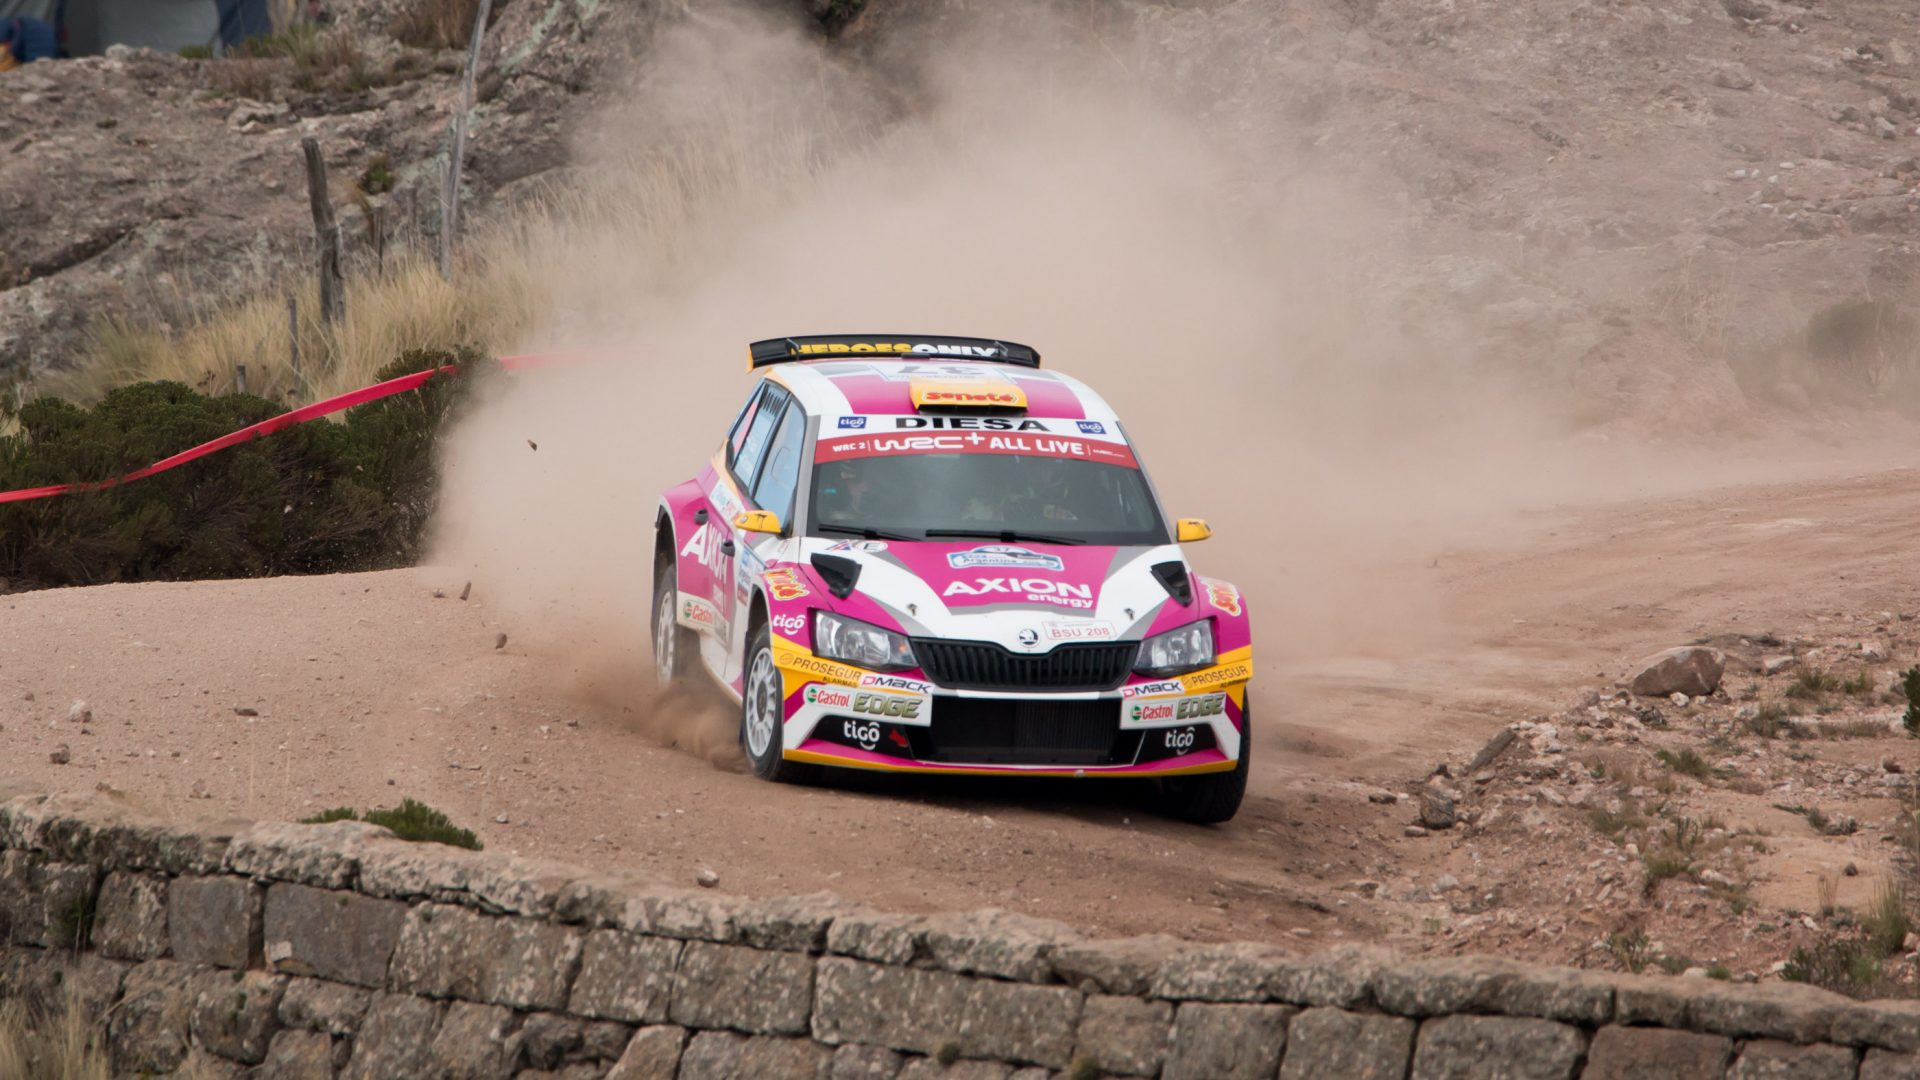 Gustavo Saba: Third Year of South American Dominance for FABIA R5 | Champs Around the World